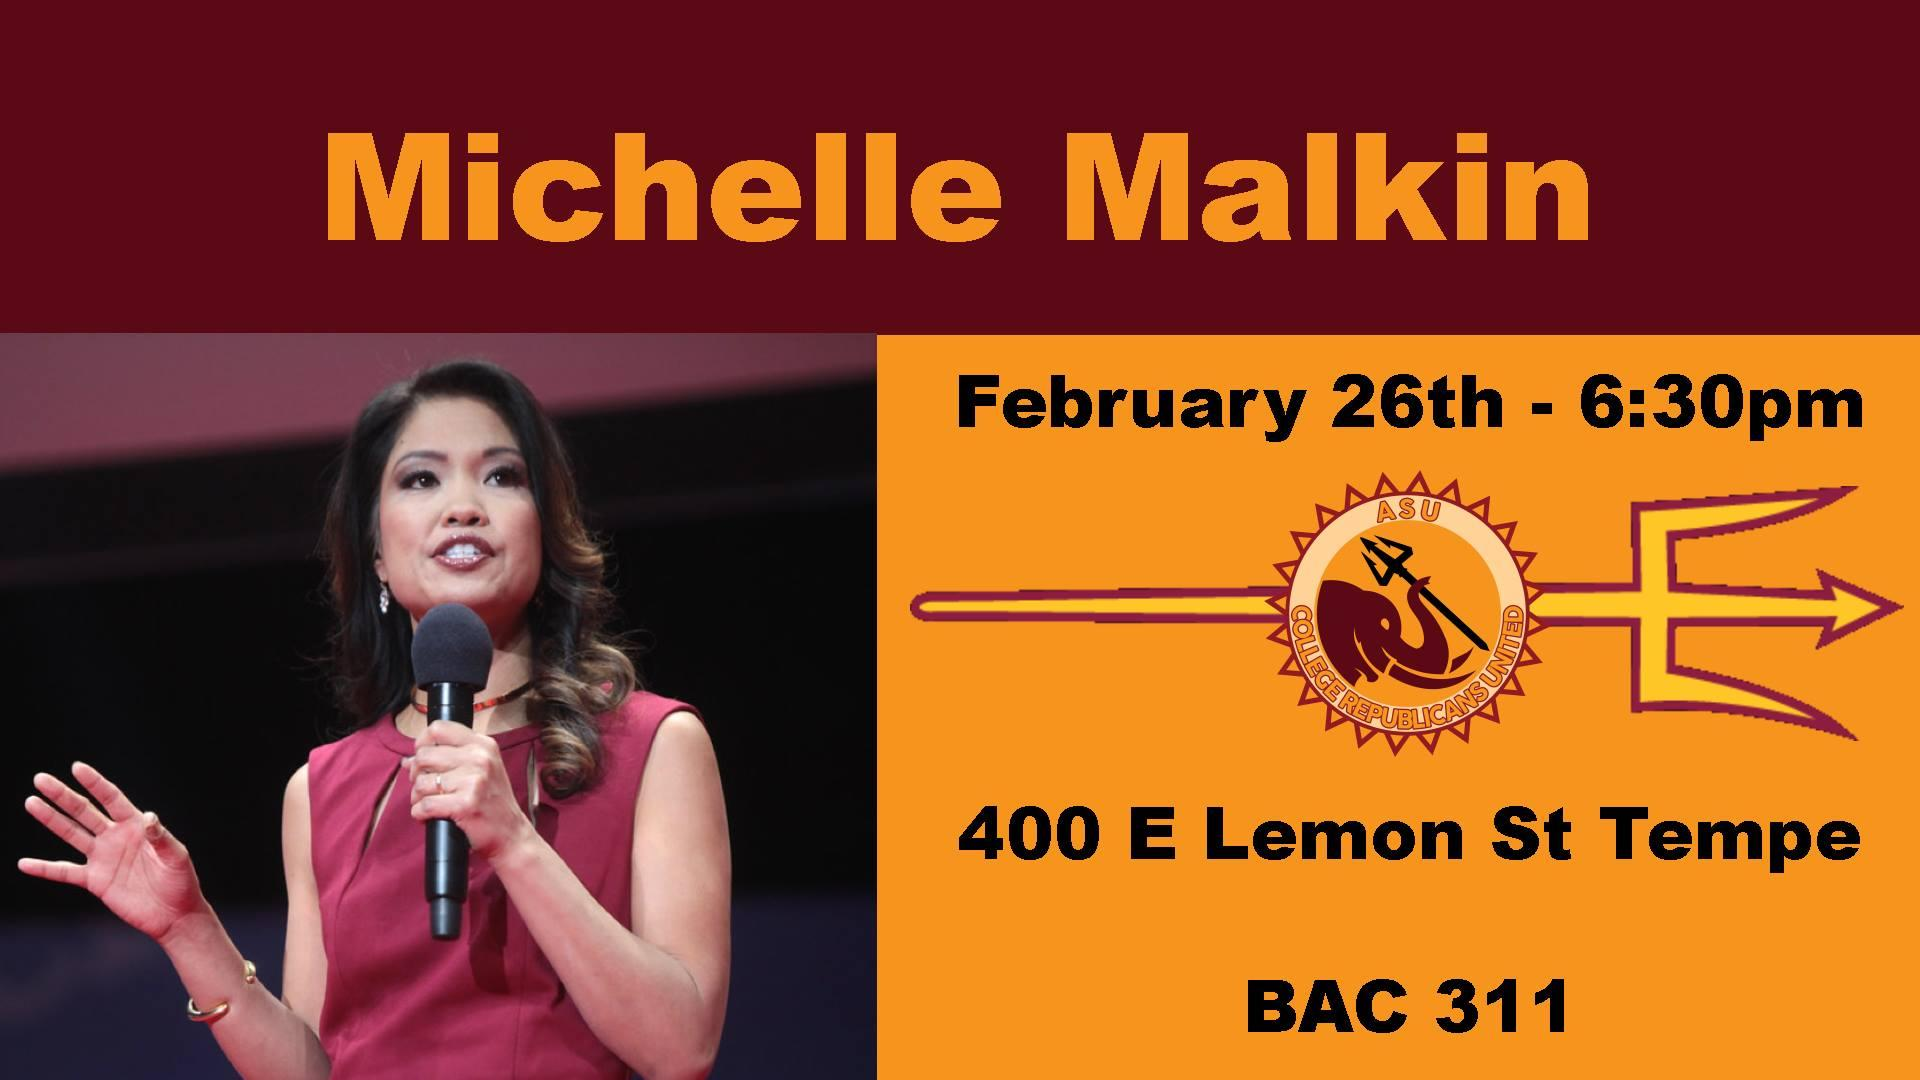 Meeting: Michelle Malkin